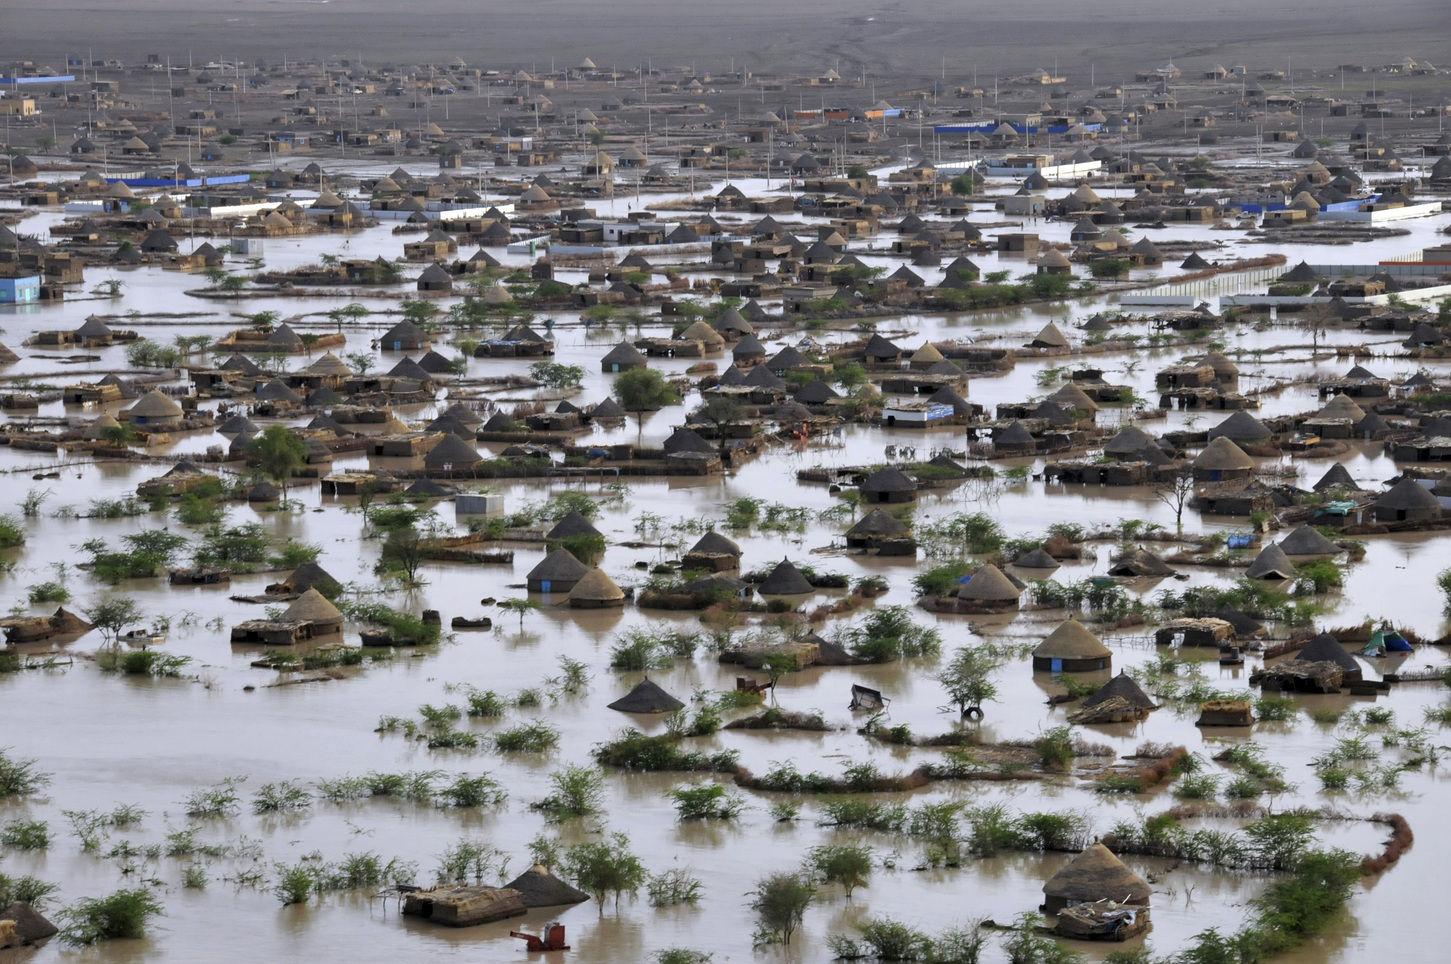 General view of the Gash River flooding in Kassala, Eastern Sudan August 11, 2012. REUTERS/Stringer (Sudan - Tags: ENVIRONMENT DISASTER TPX IMAGES OF THE DAY) - RTR36Q6I